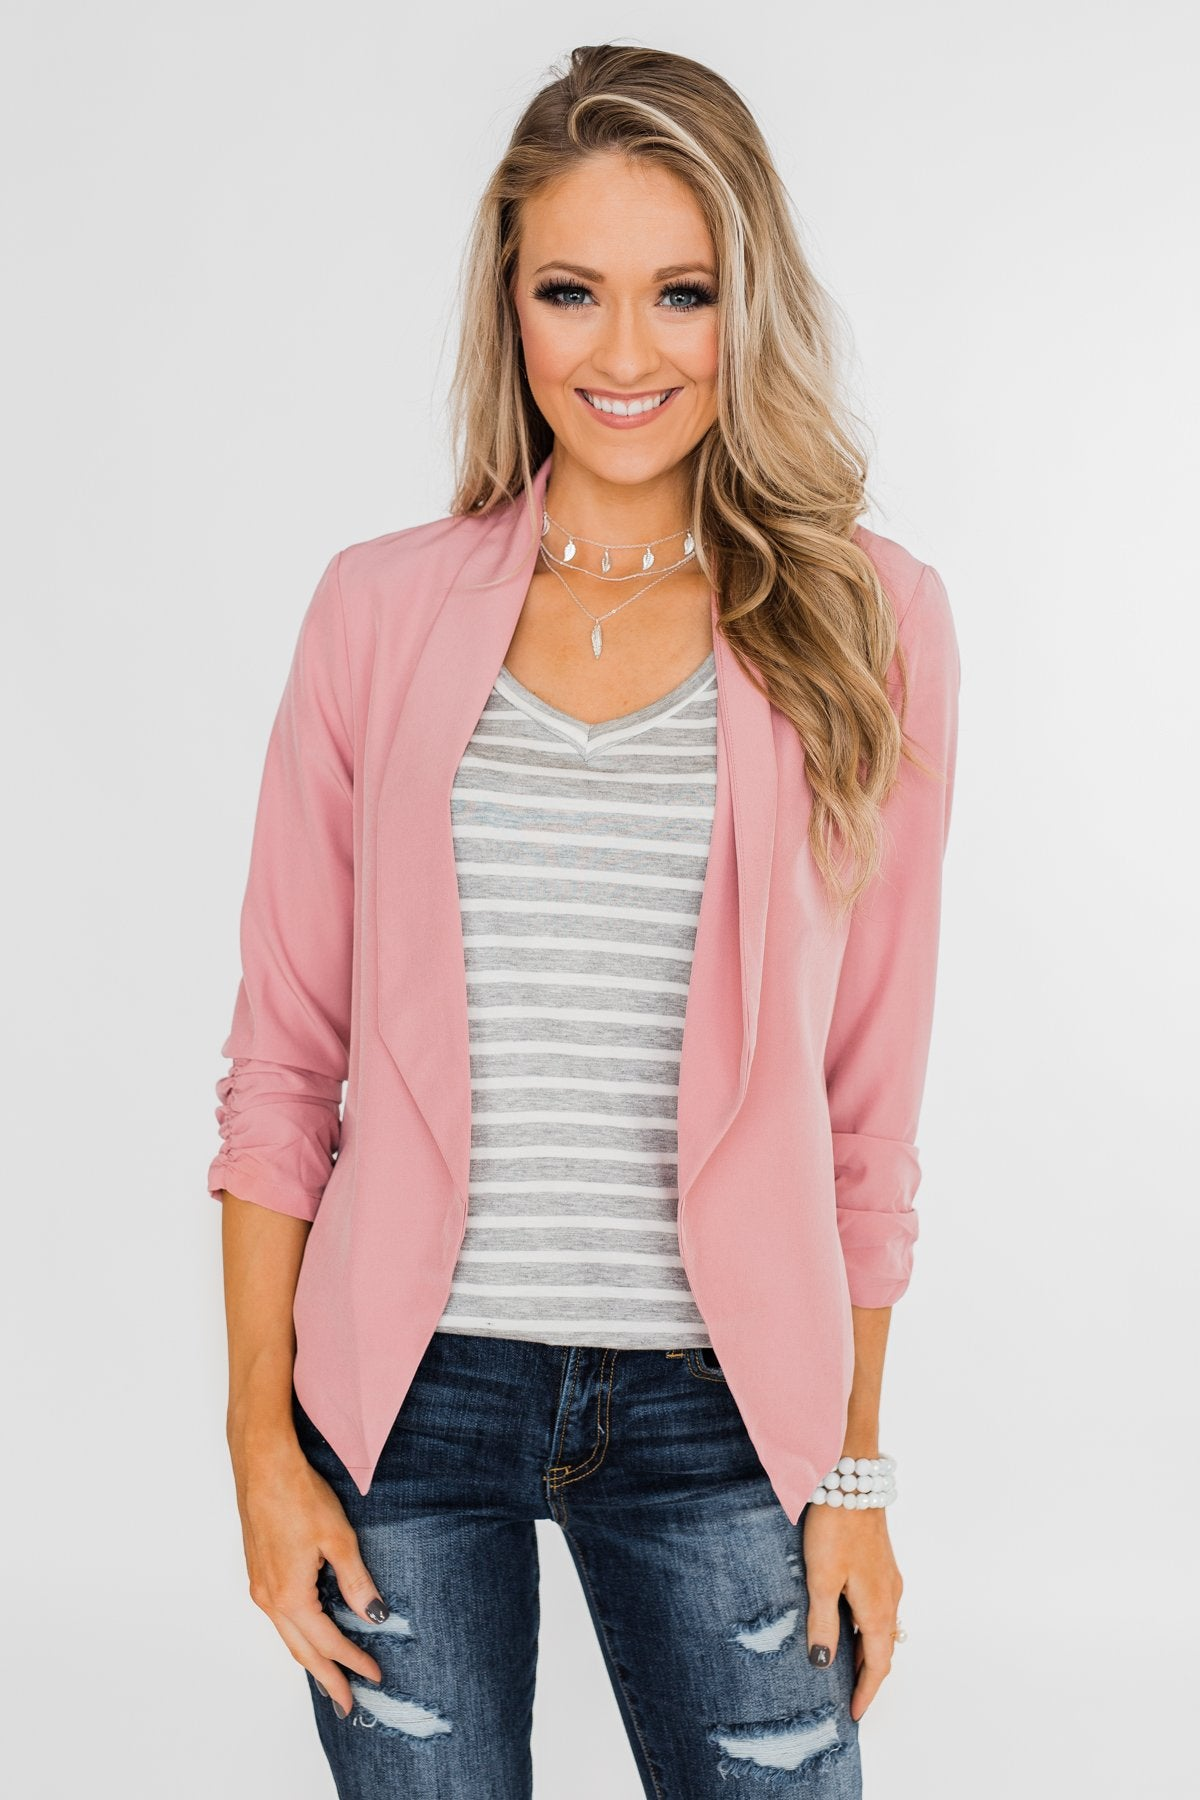 Keep It Professional Blazer- Light Pink